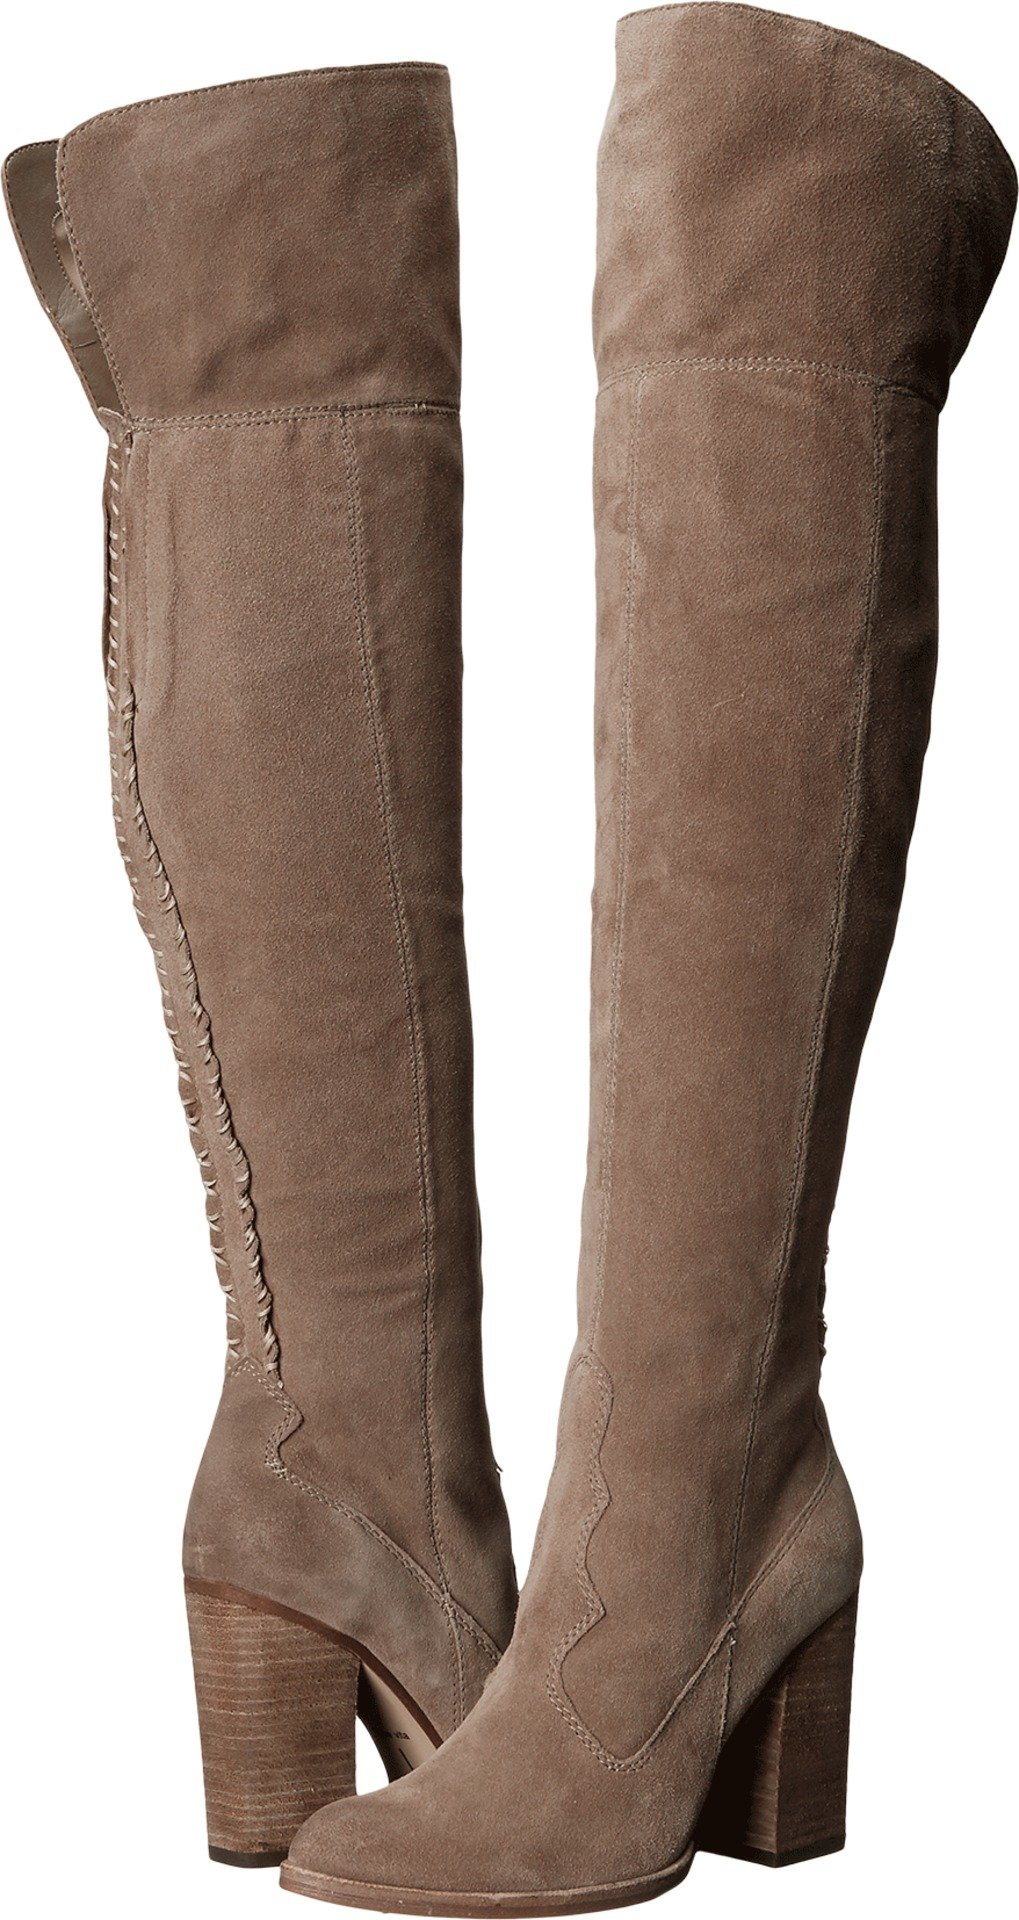 Dolce Vita Women's Cliff Western Boot, Light Taupe, 9.5 M US